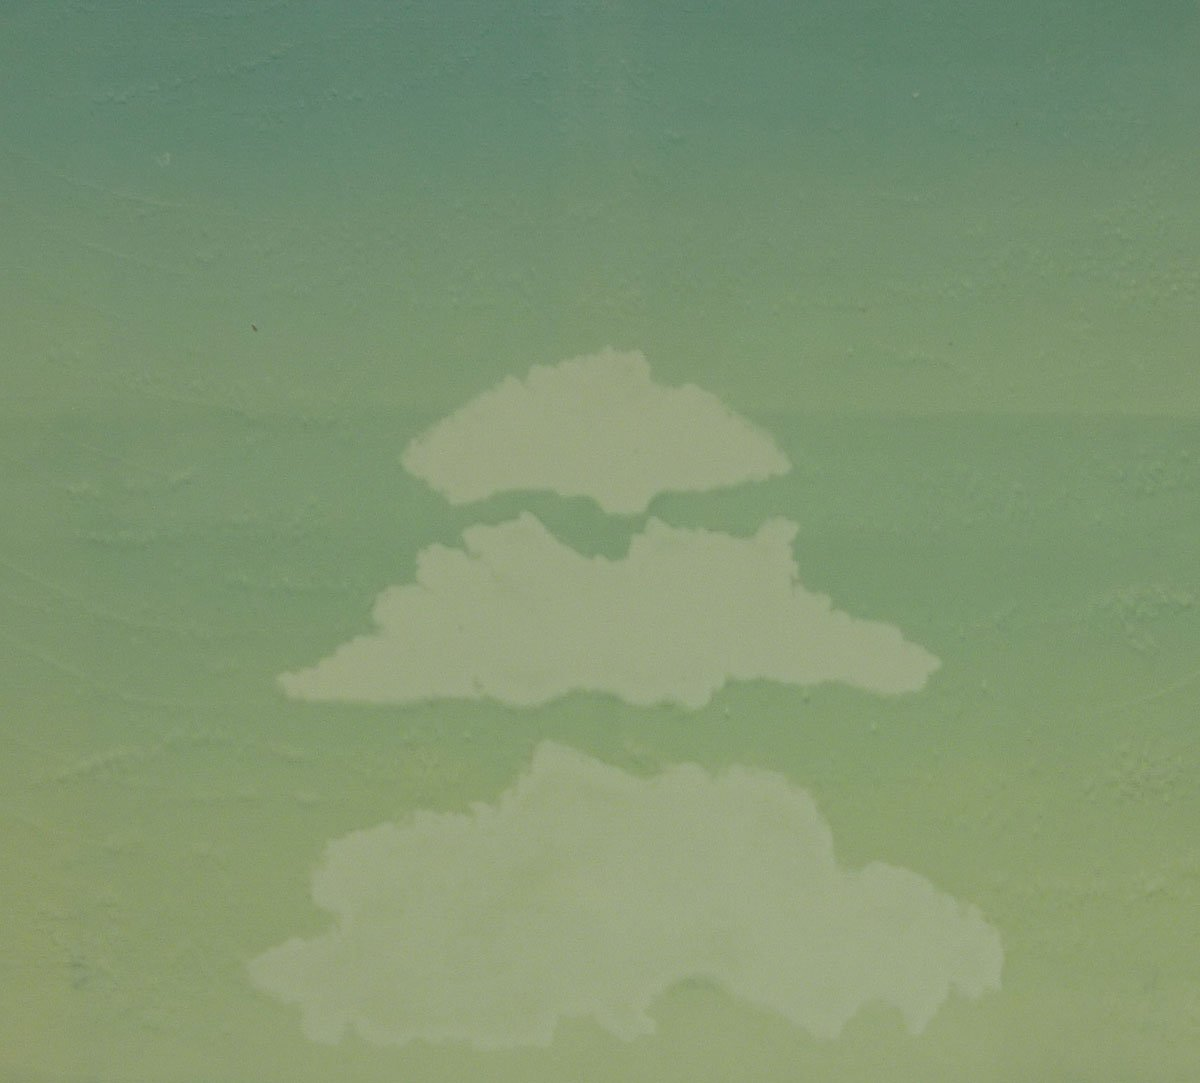 Prints-B-3-clouds-(melded-green)-2019-08-12-12.54.01-2